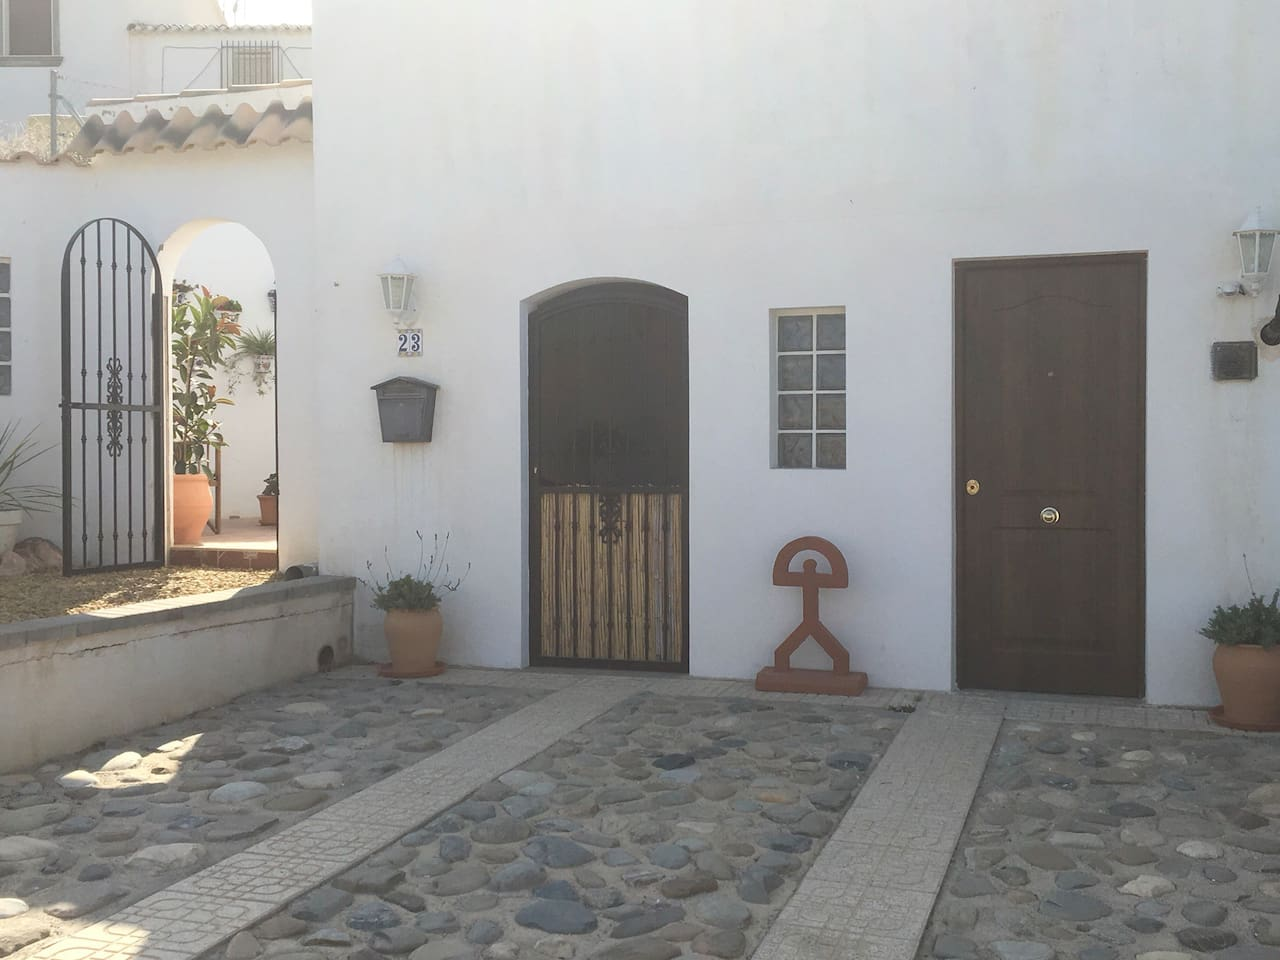 Entrance to the guest suite, gate to patio garden and utility room.